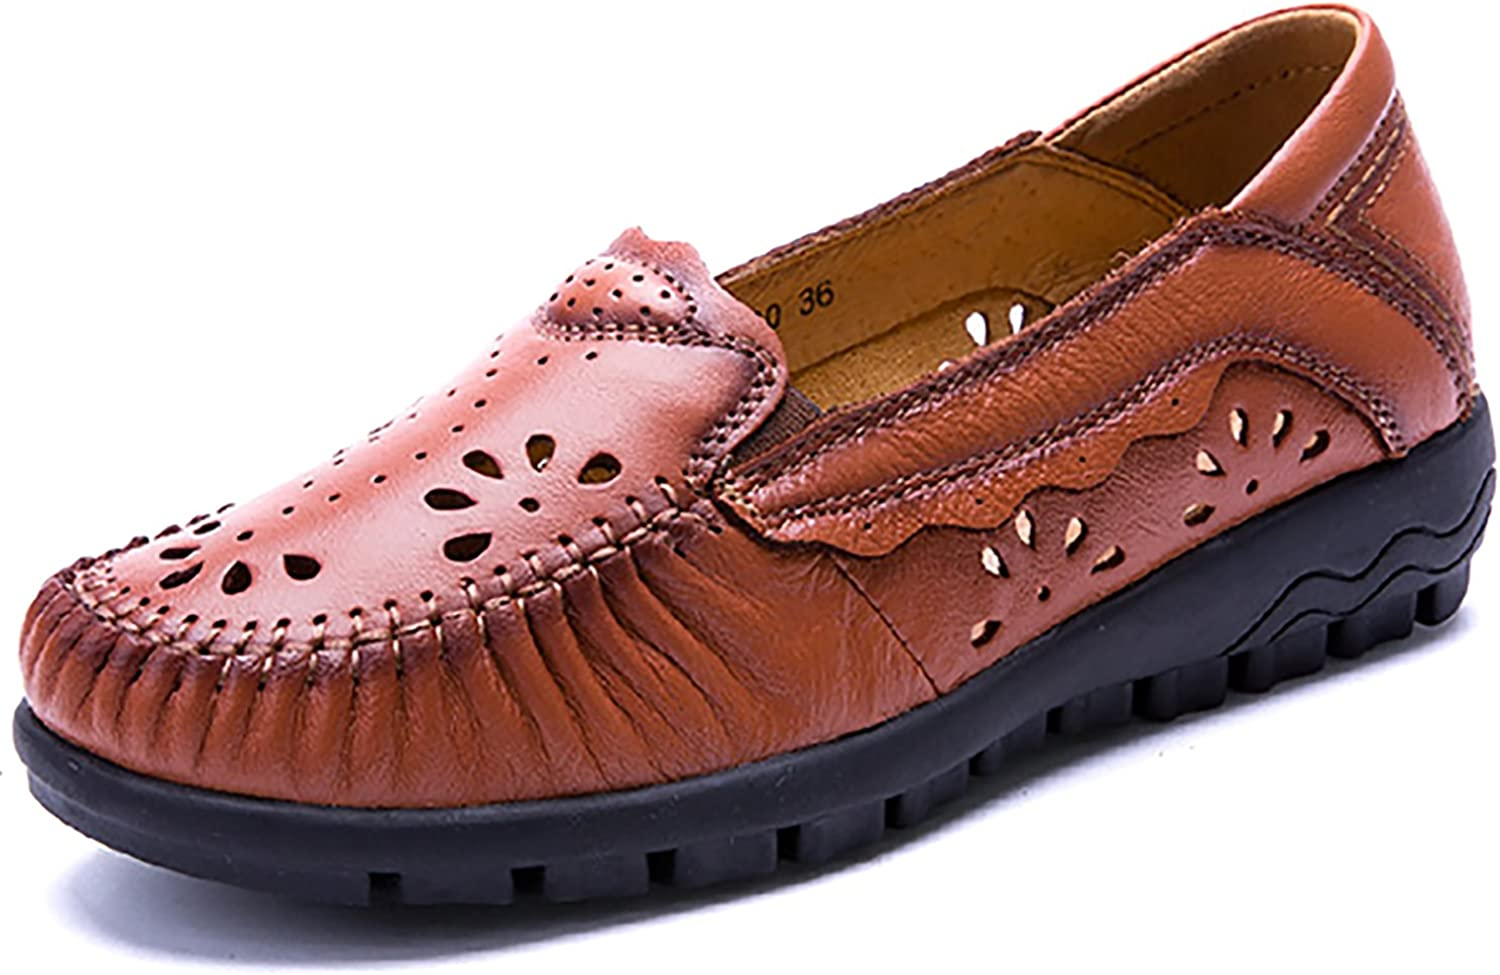 Odema Women's Leather Slip On Loafers Flats Moccasins Driving shoes Casual Walking shoes